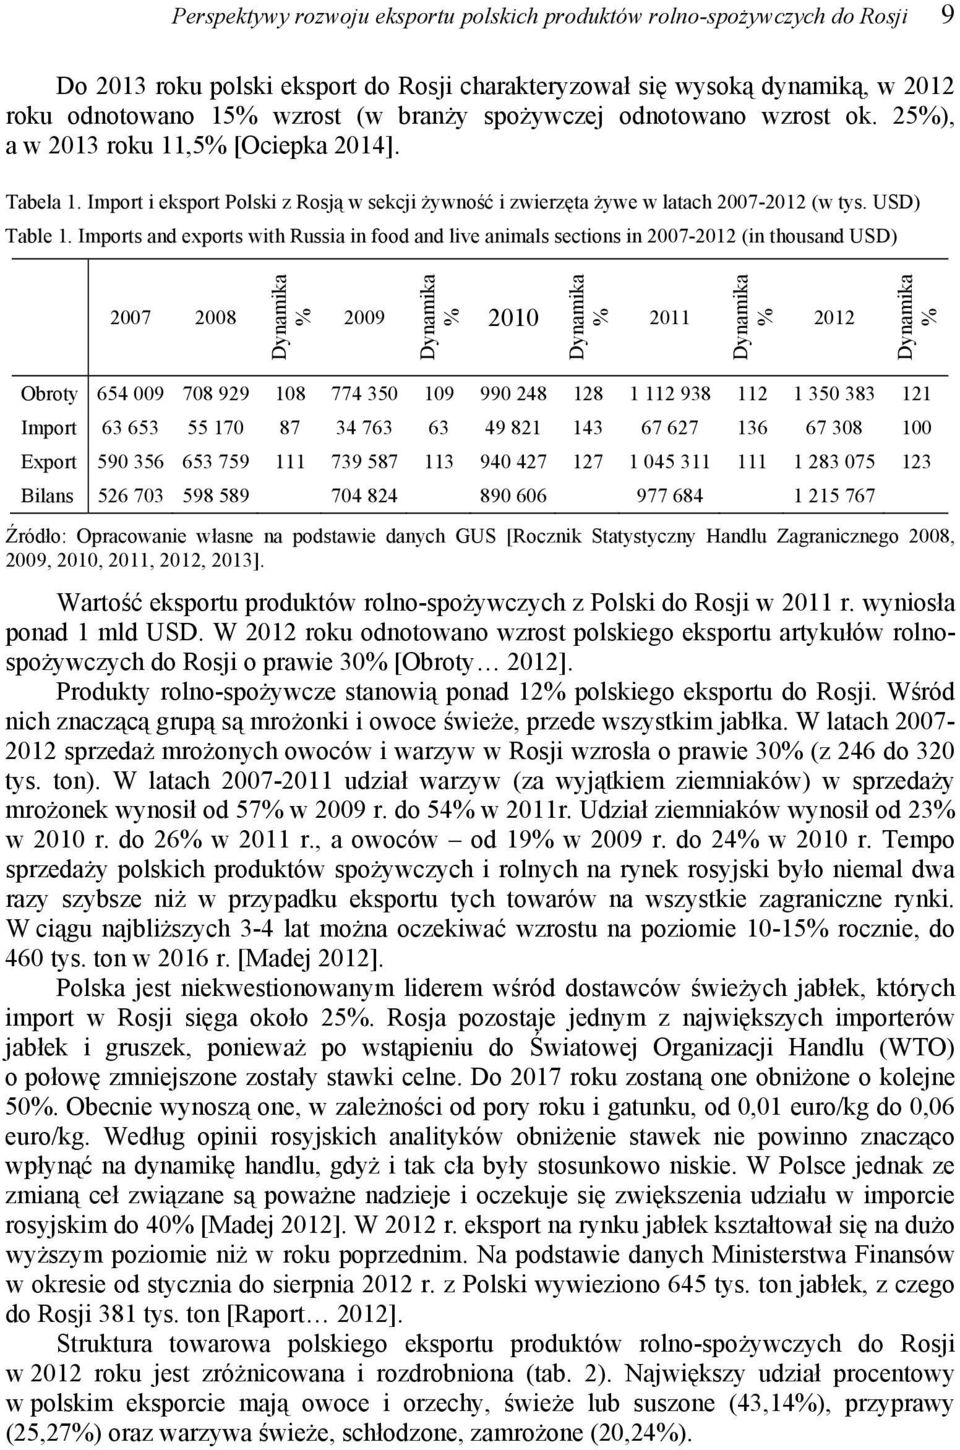 Imports and exports with Russia in food and live animals sections in 2007-2012 (in thousand USD) 2007 2008 Dynamika % 2009 Dynamika % 2010 Dynamika % 2011 Dynamika % 2012 Dynamika % Obroty 654 009